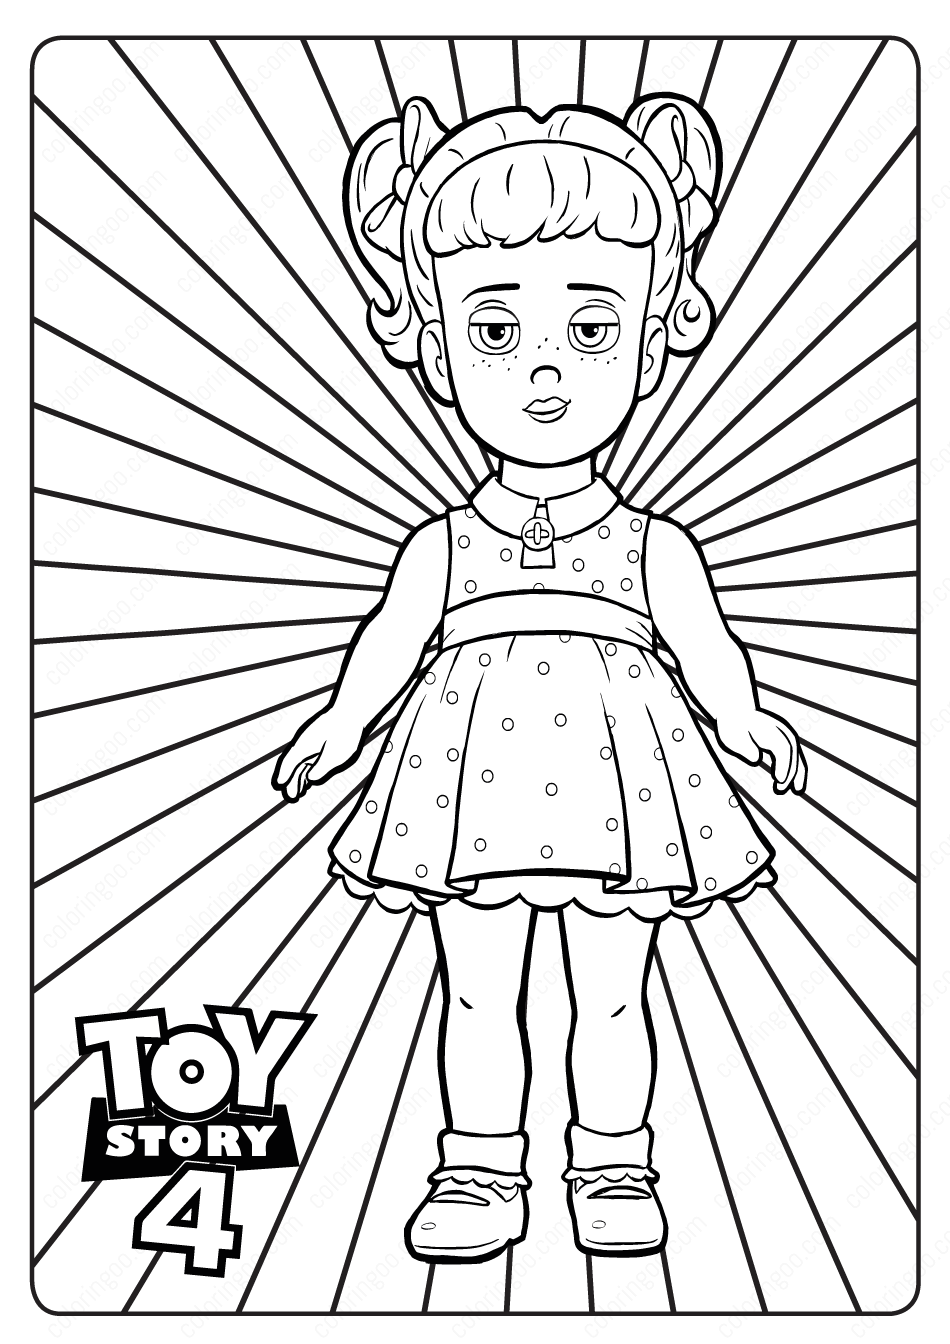 Printable Toy Story 4 Gabby Gabby PDF Coloring Pages in ...